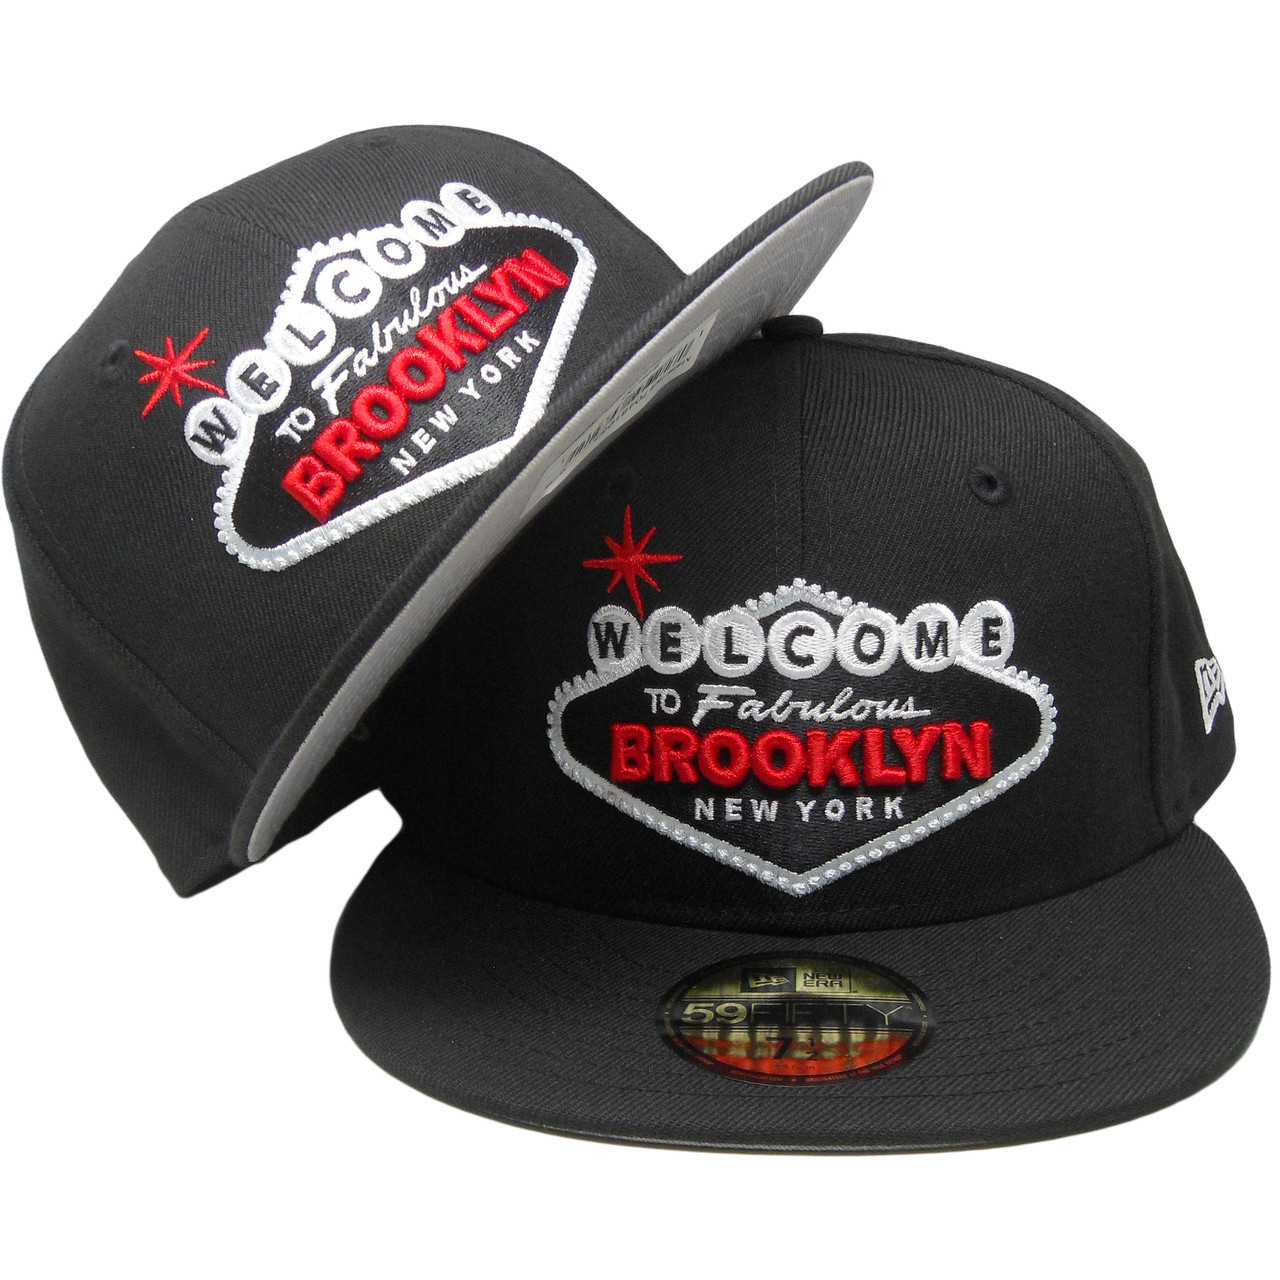 half off e03a4 18381 Welcome to Fabulous Brooklyn New Era 59Fifty Fitted Hat - Black, Red, White  - ECapsUnlimited.com